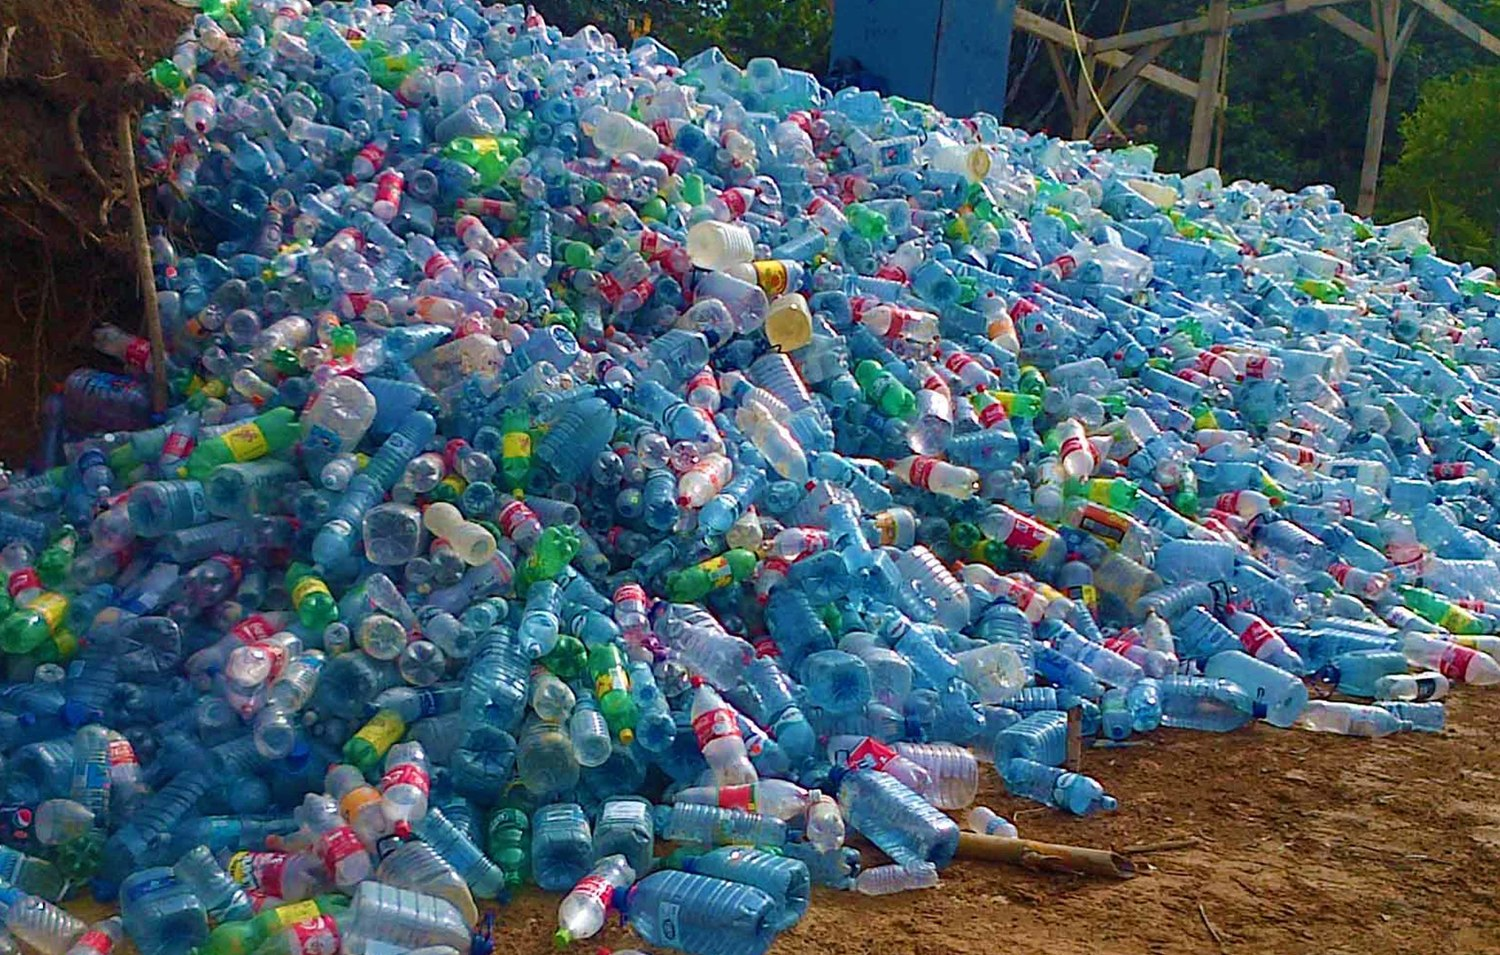 Plastic bottles provide insulation for homes in Plastic Bottle Village